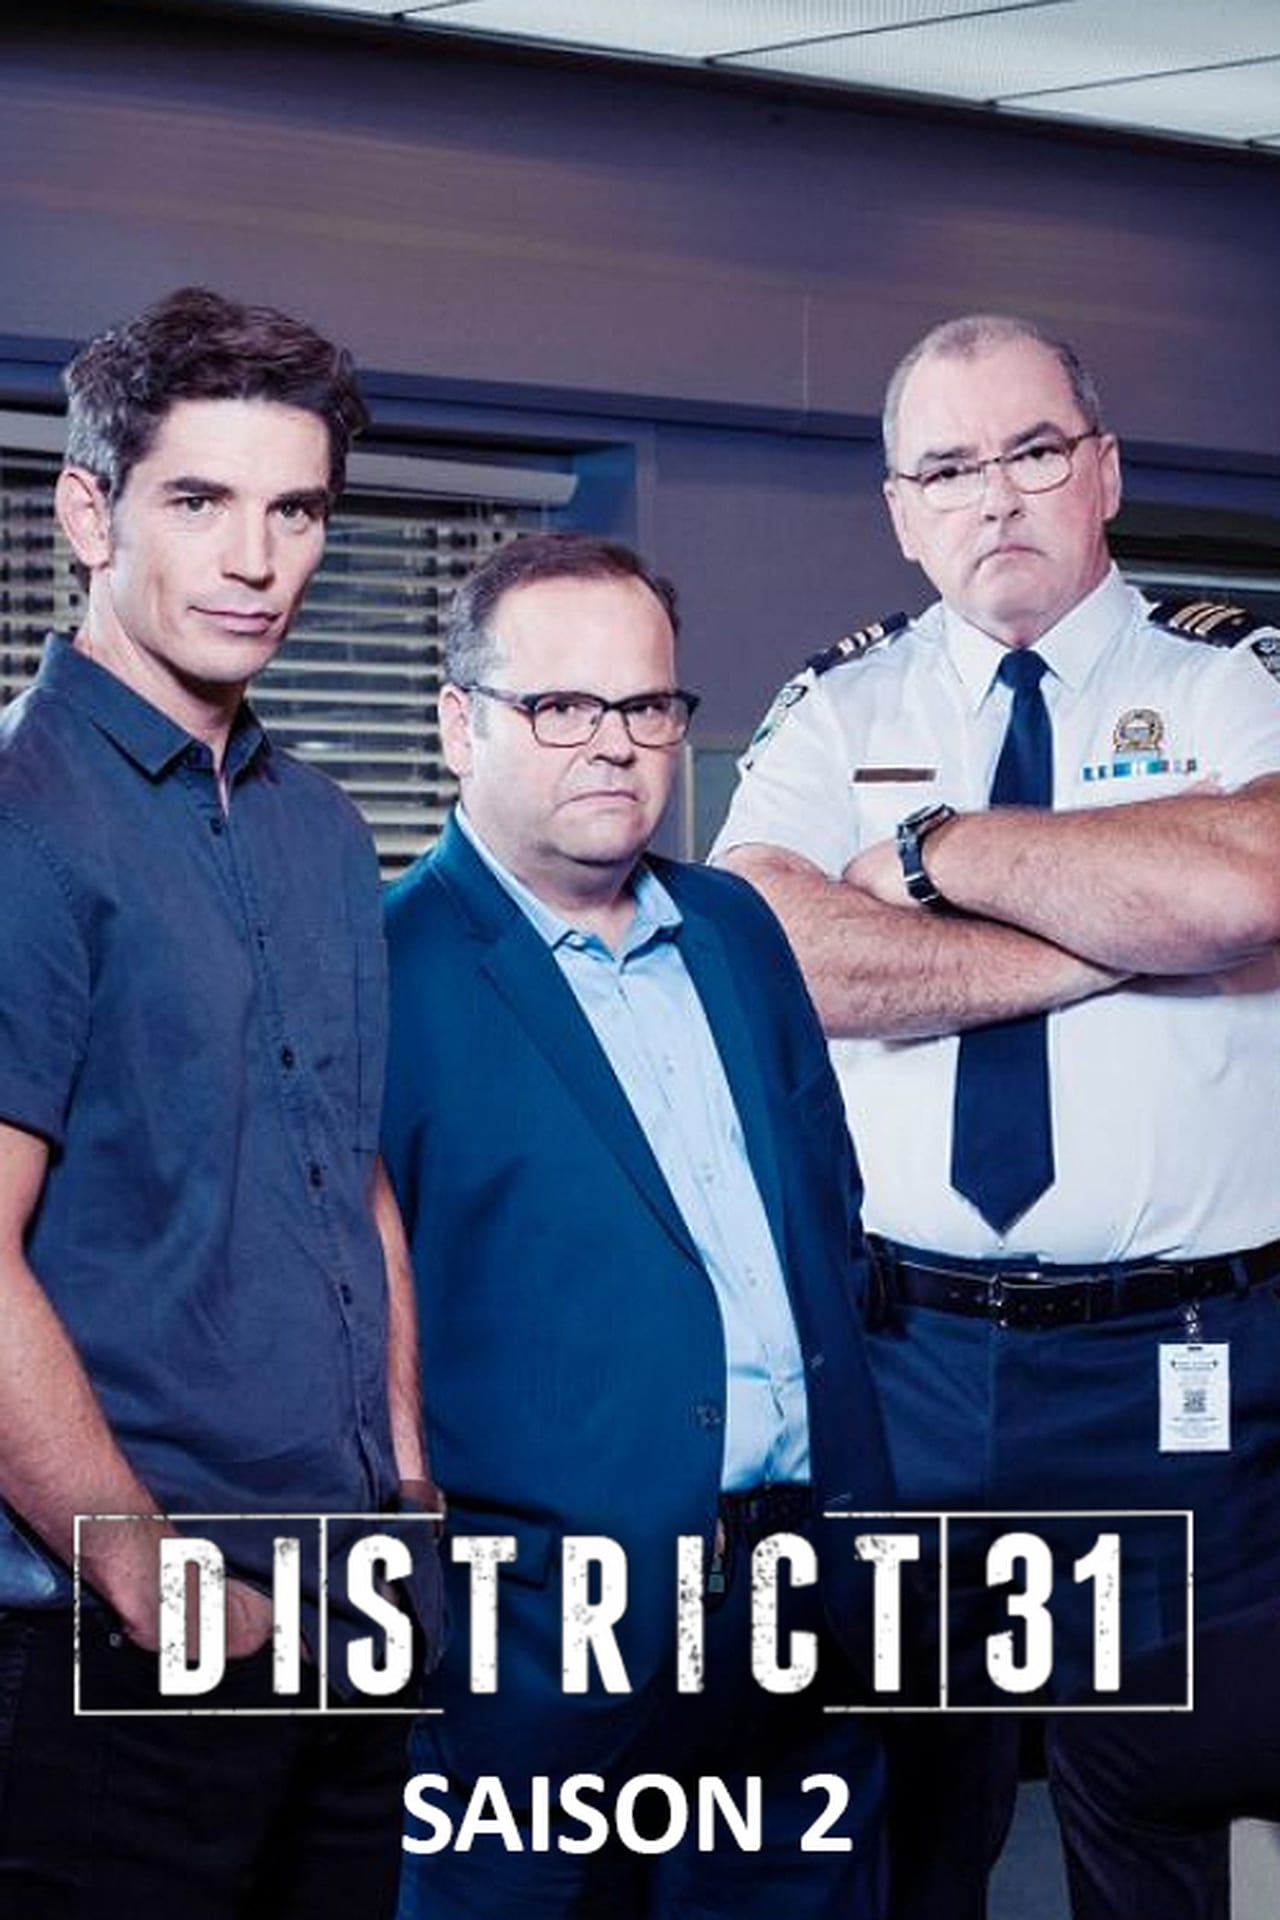 Putlocker District 31 Season 2 (2017)